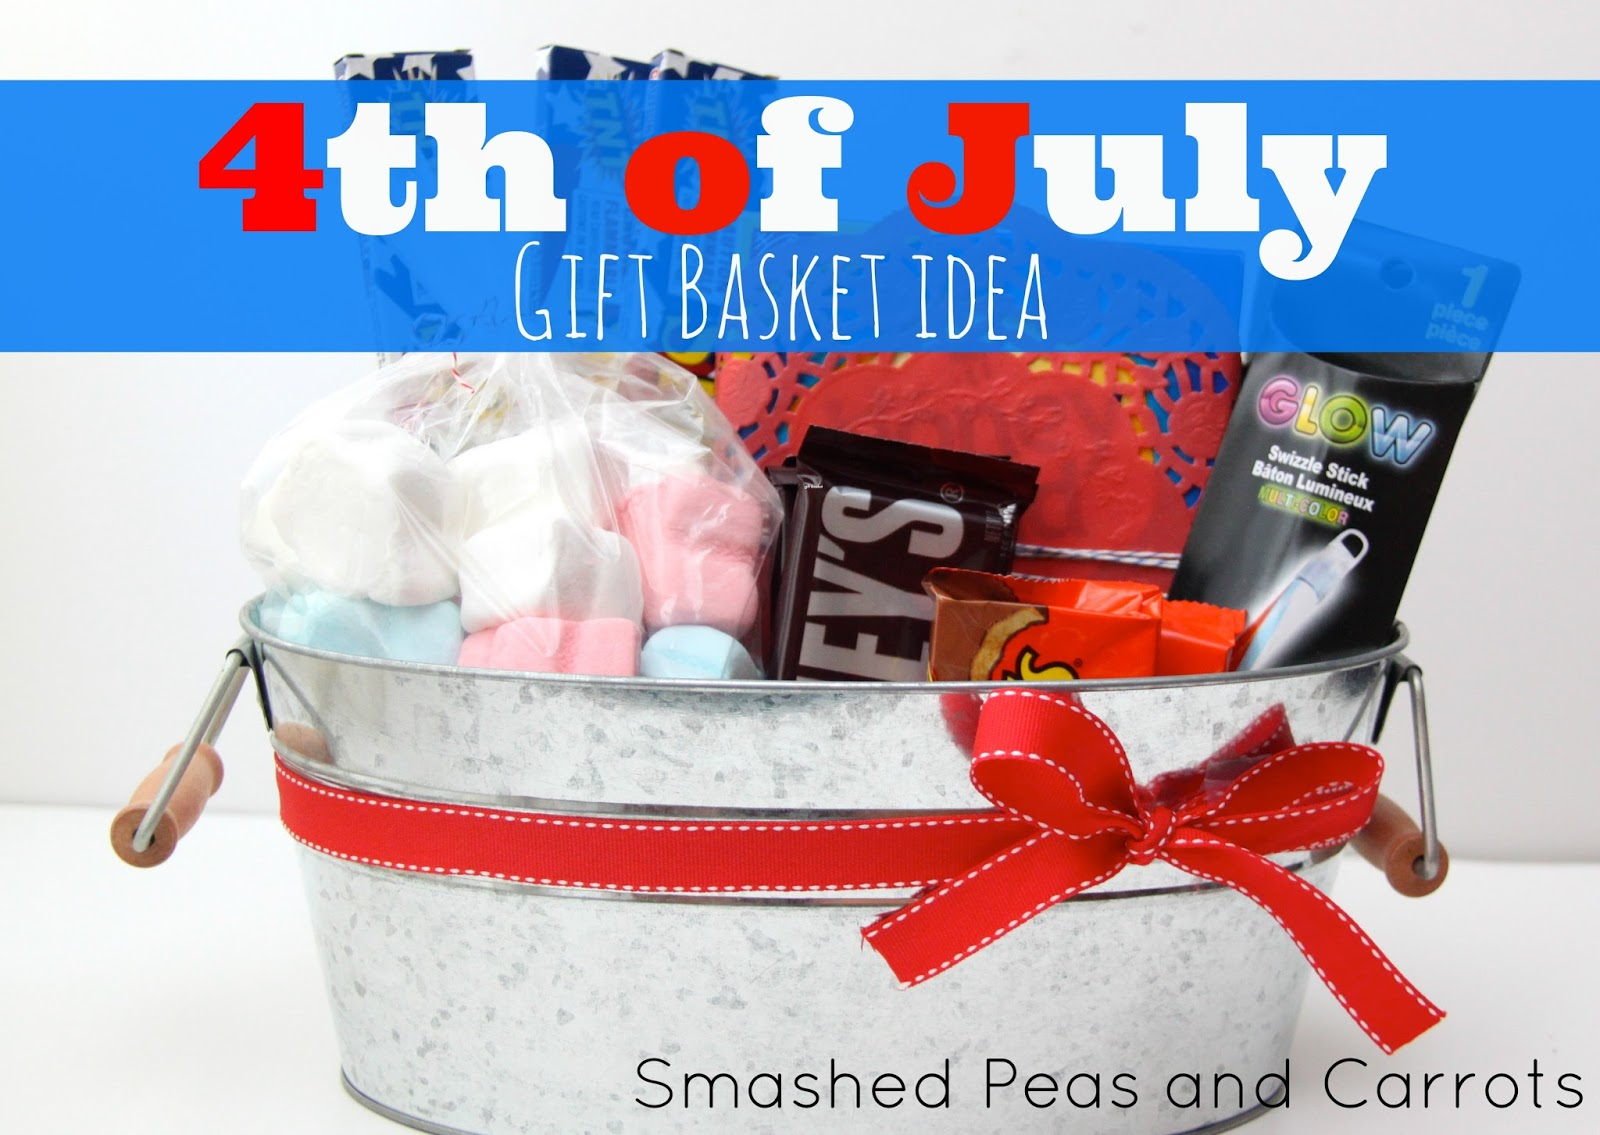 4th of july gift basket idea - smashed peas & carrots